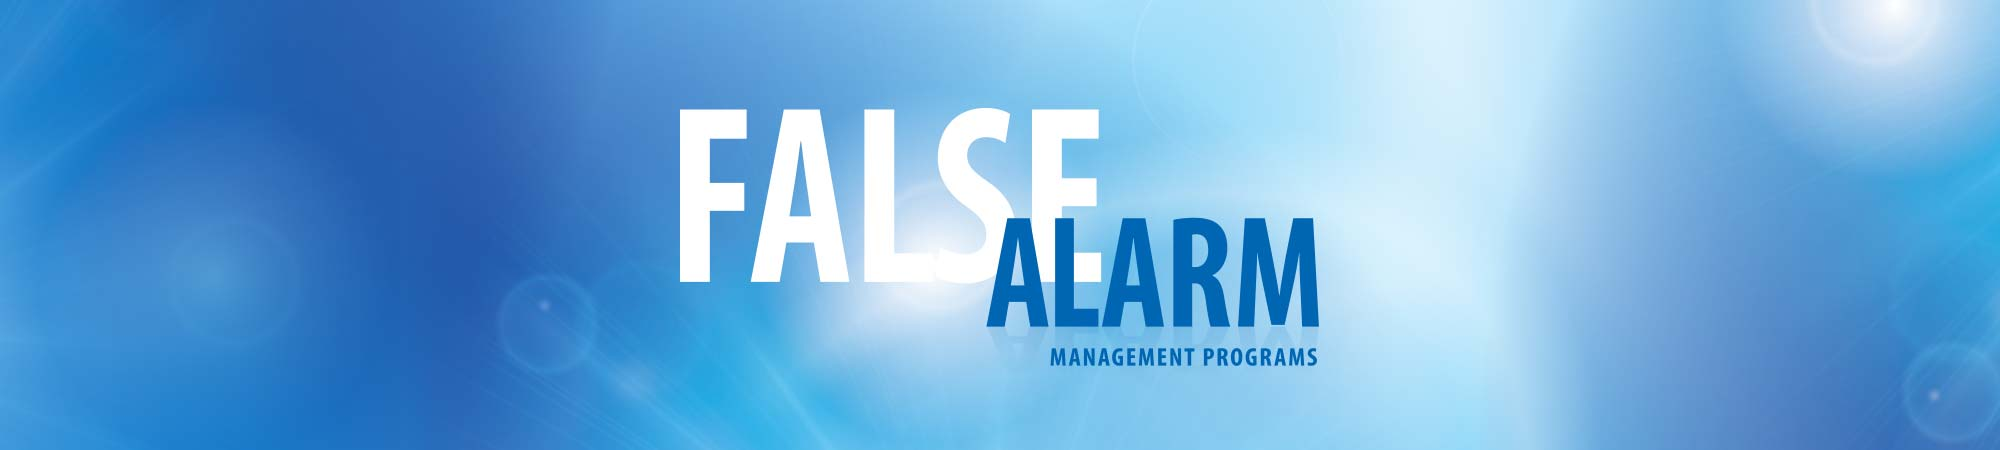 False Alarm Management Program